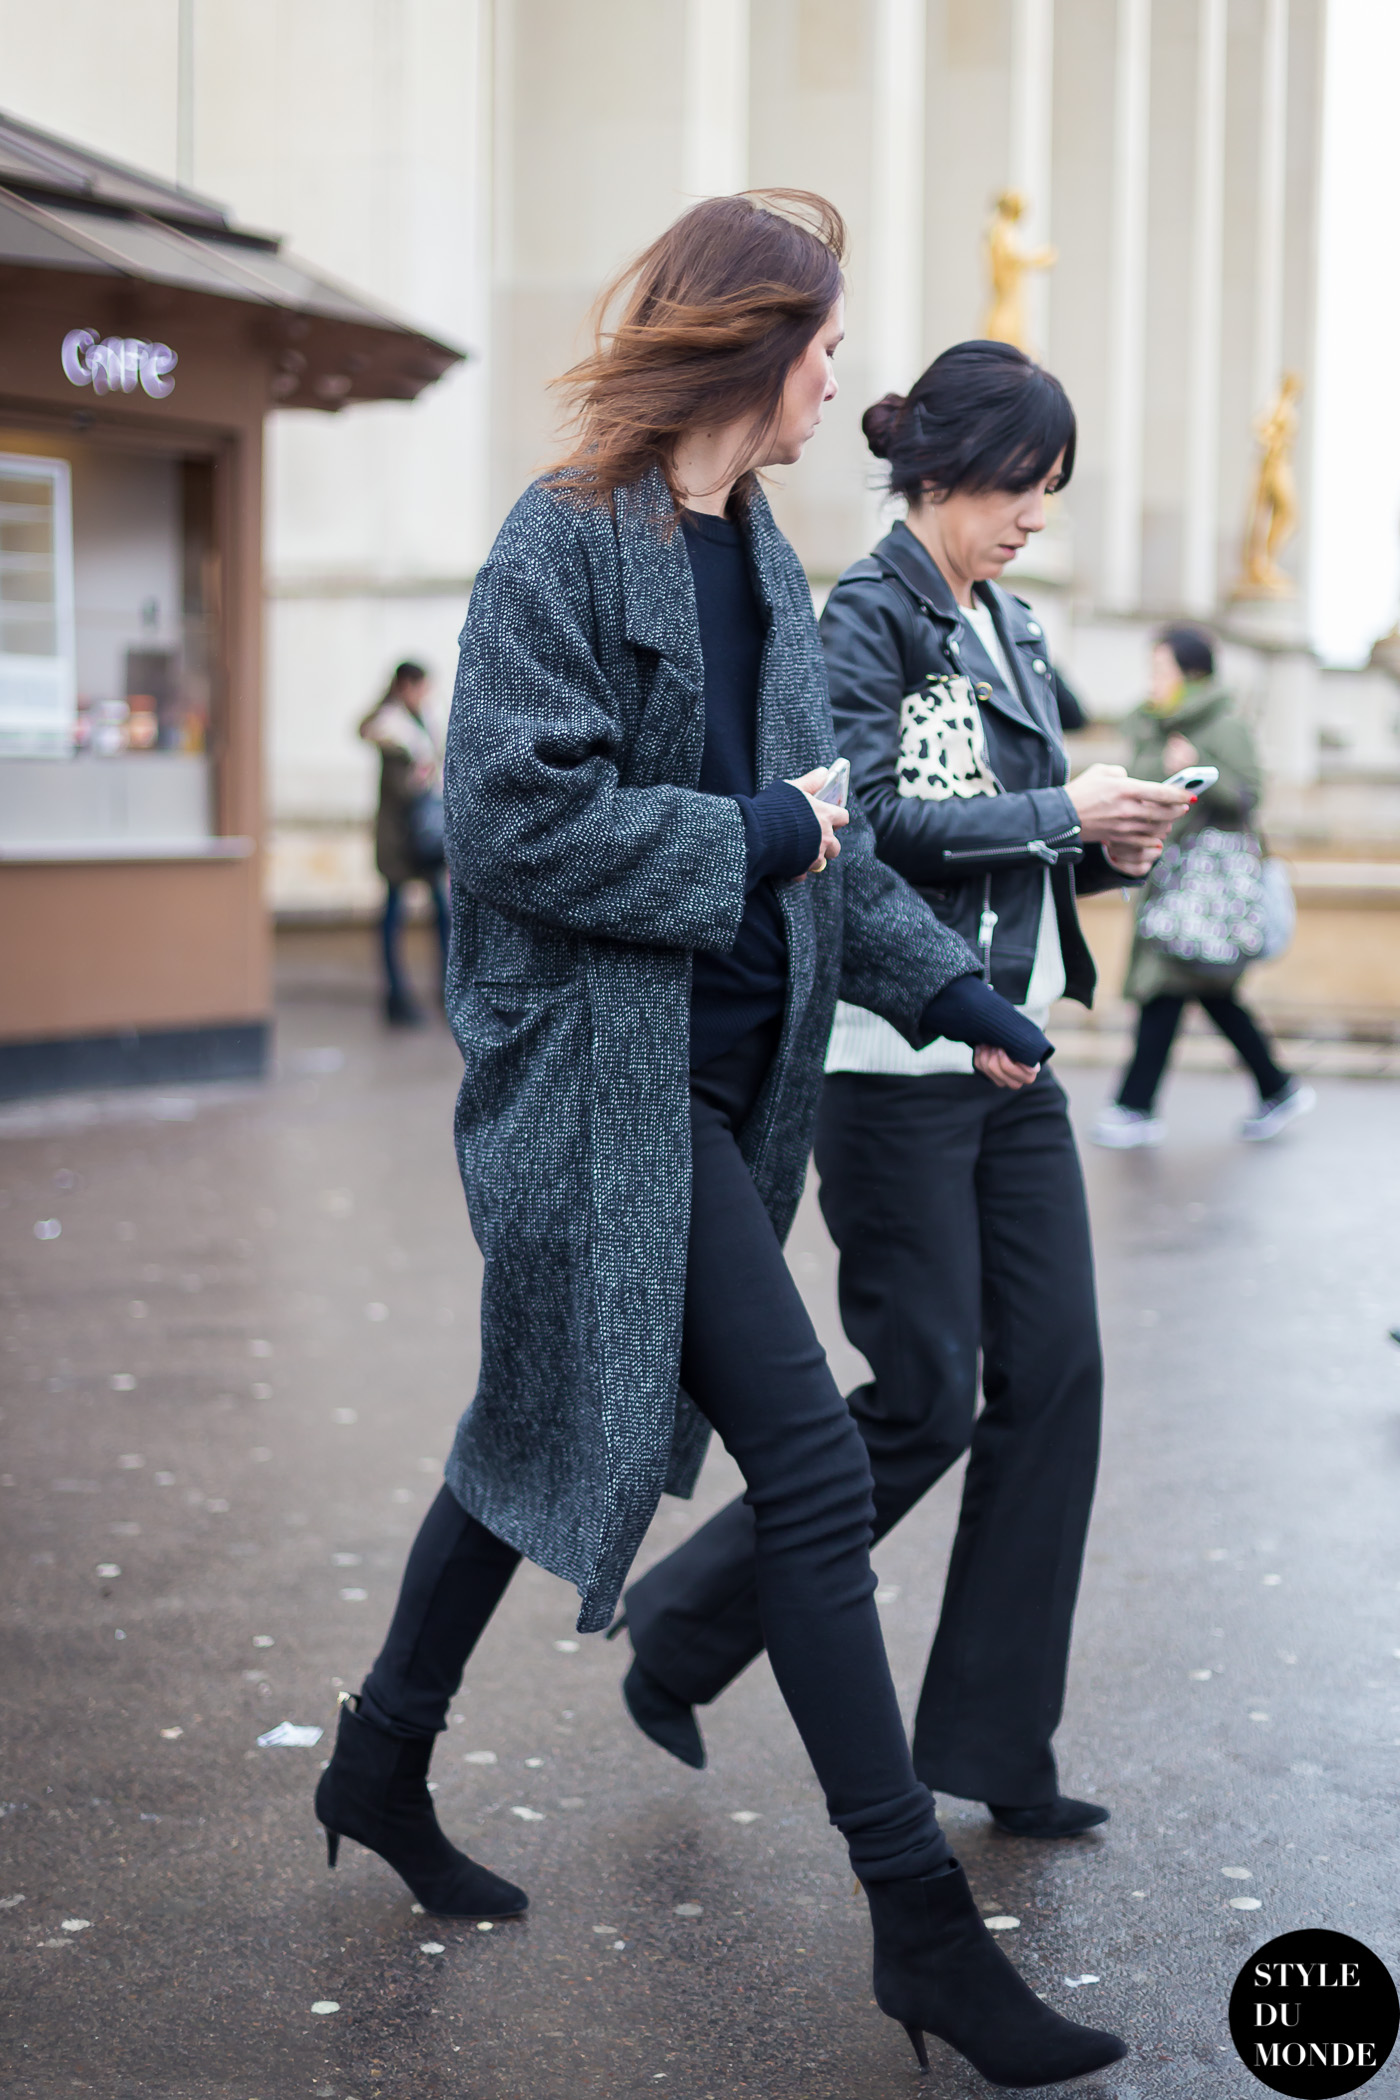 Claire Dhelens Street Style Street Fashion Streetsnaps by STYLEDUMONDE Street Style Fashion Blog